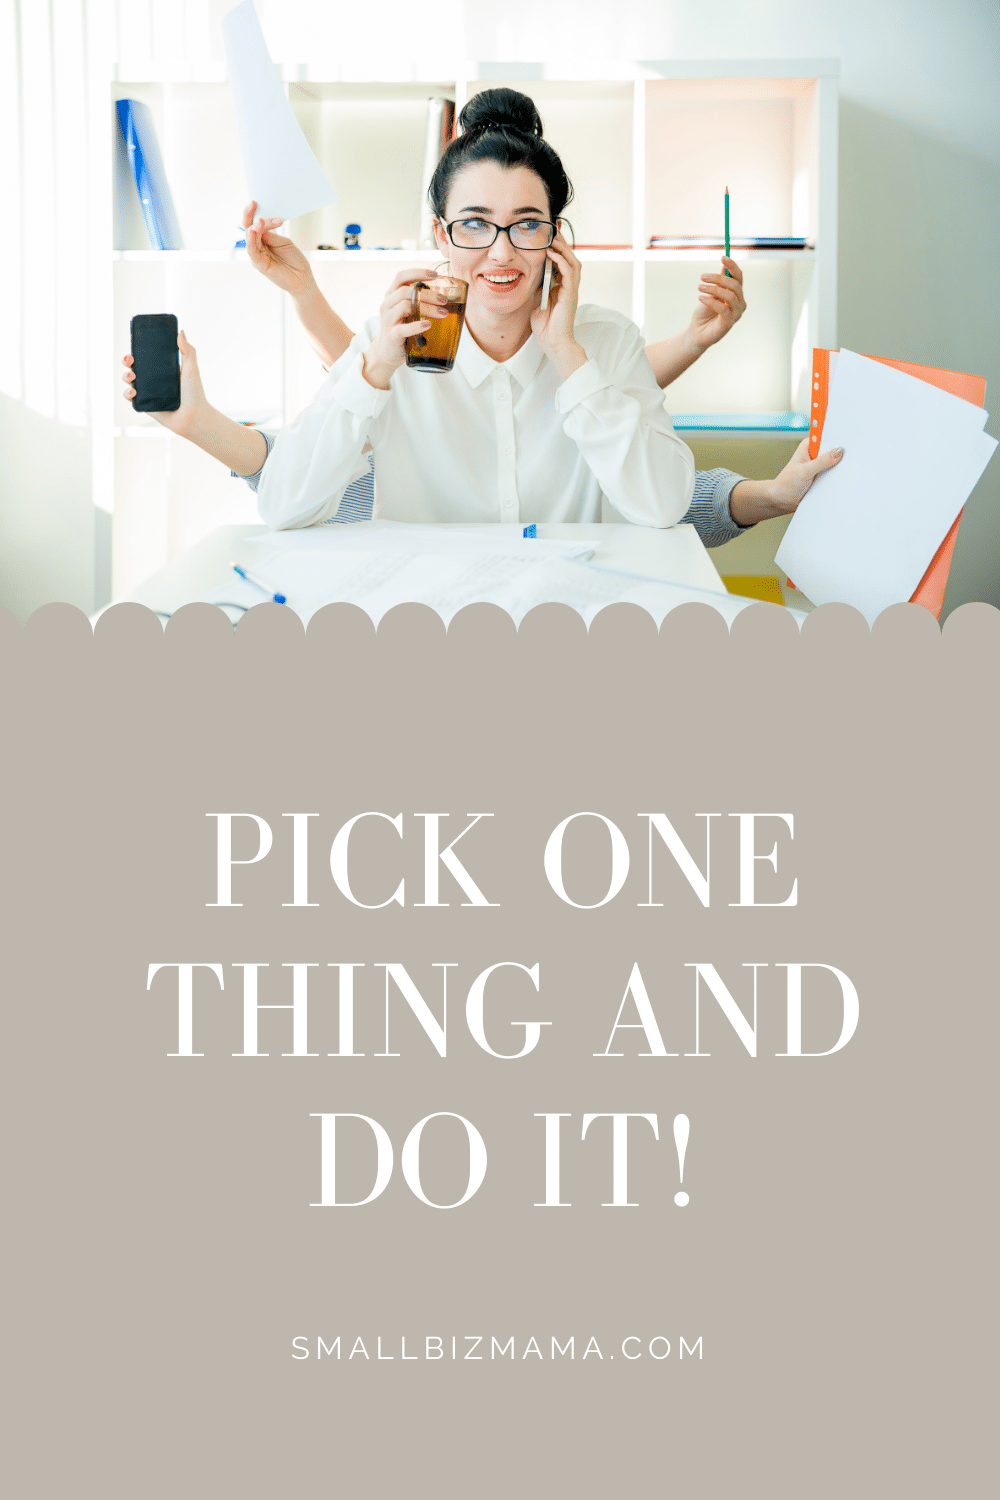 Pick one thing and do it